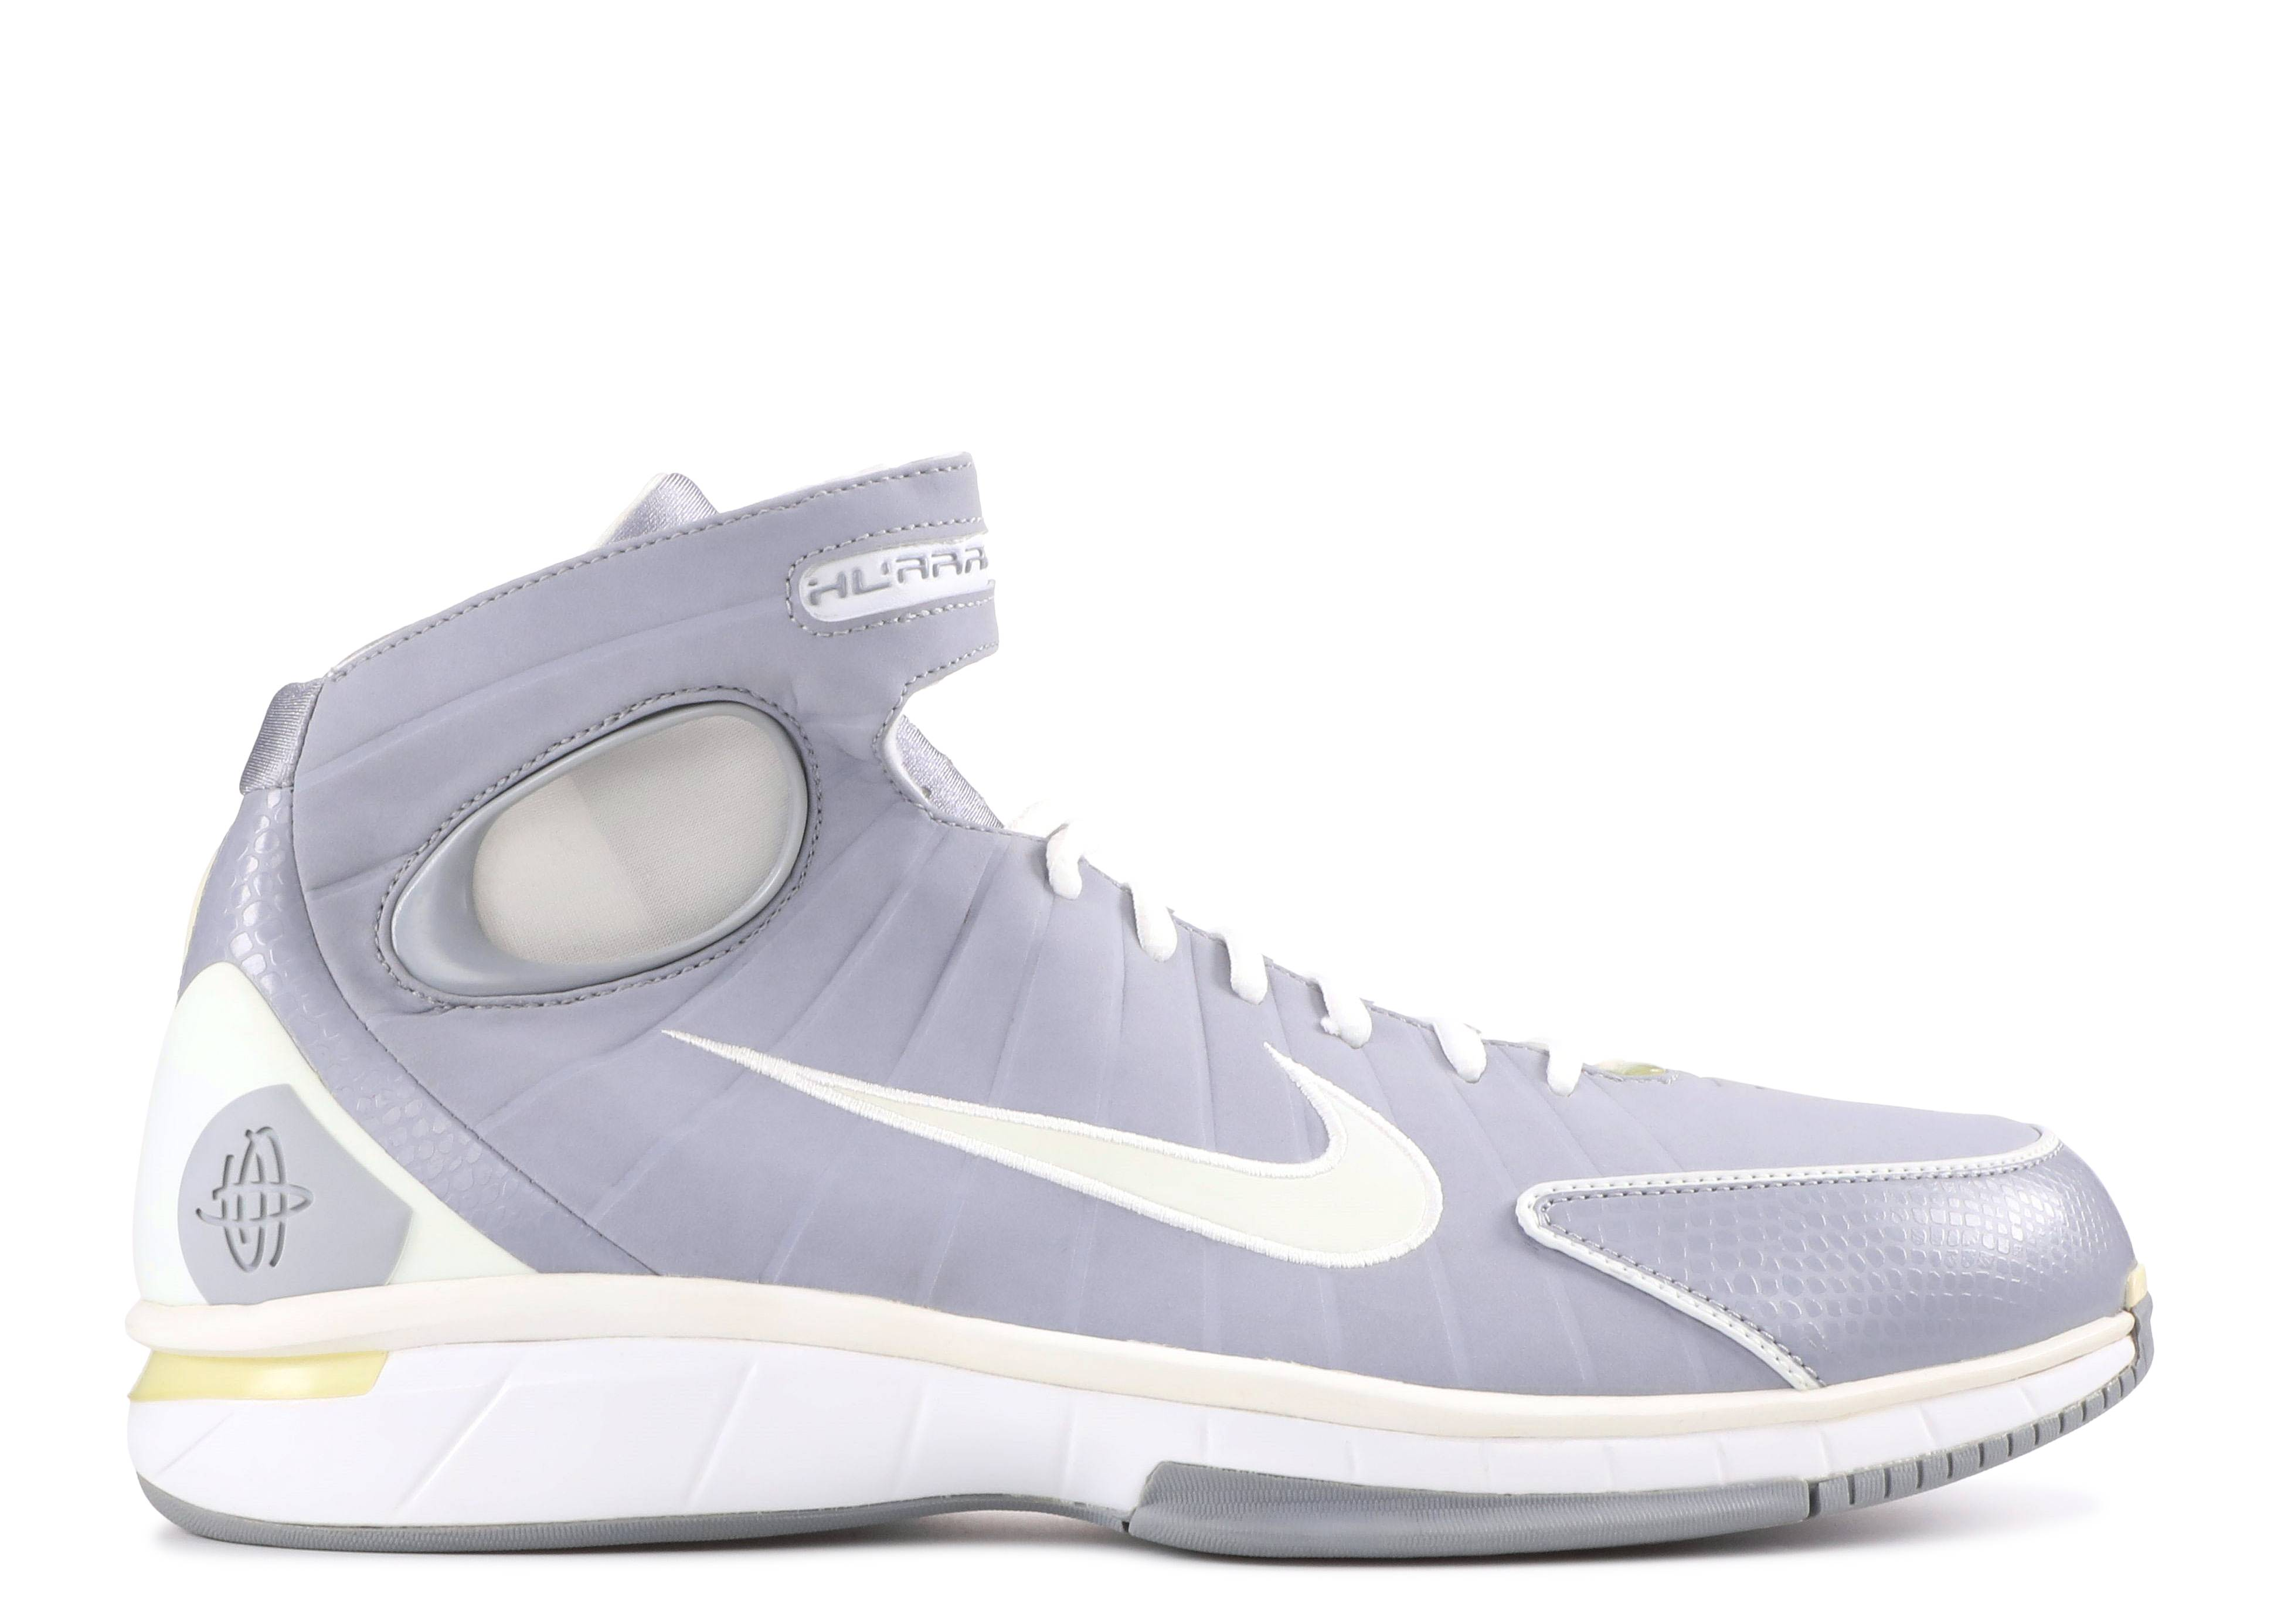 6ed1cd7dd2ef Air Zoom Huarache 2k4 - Nike - 310315 011 - stealth  white